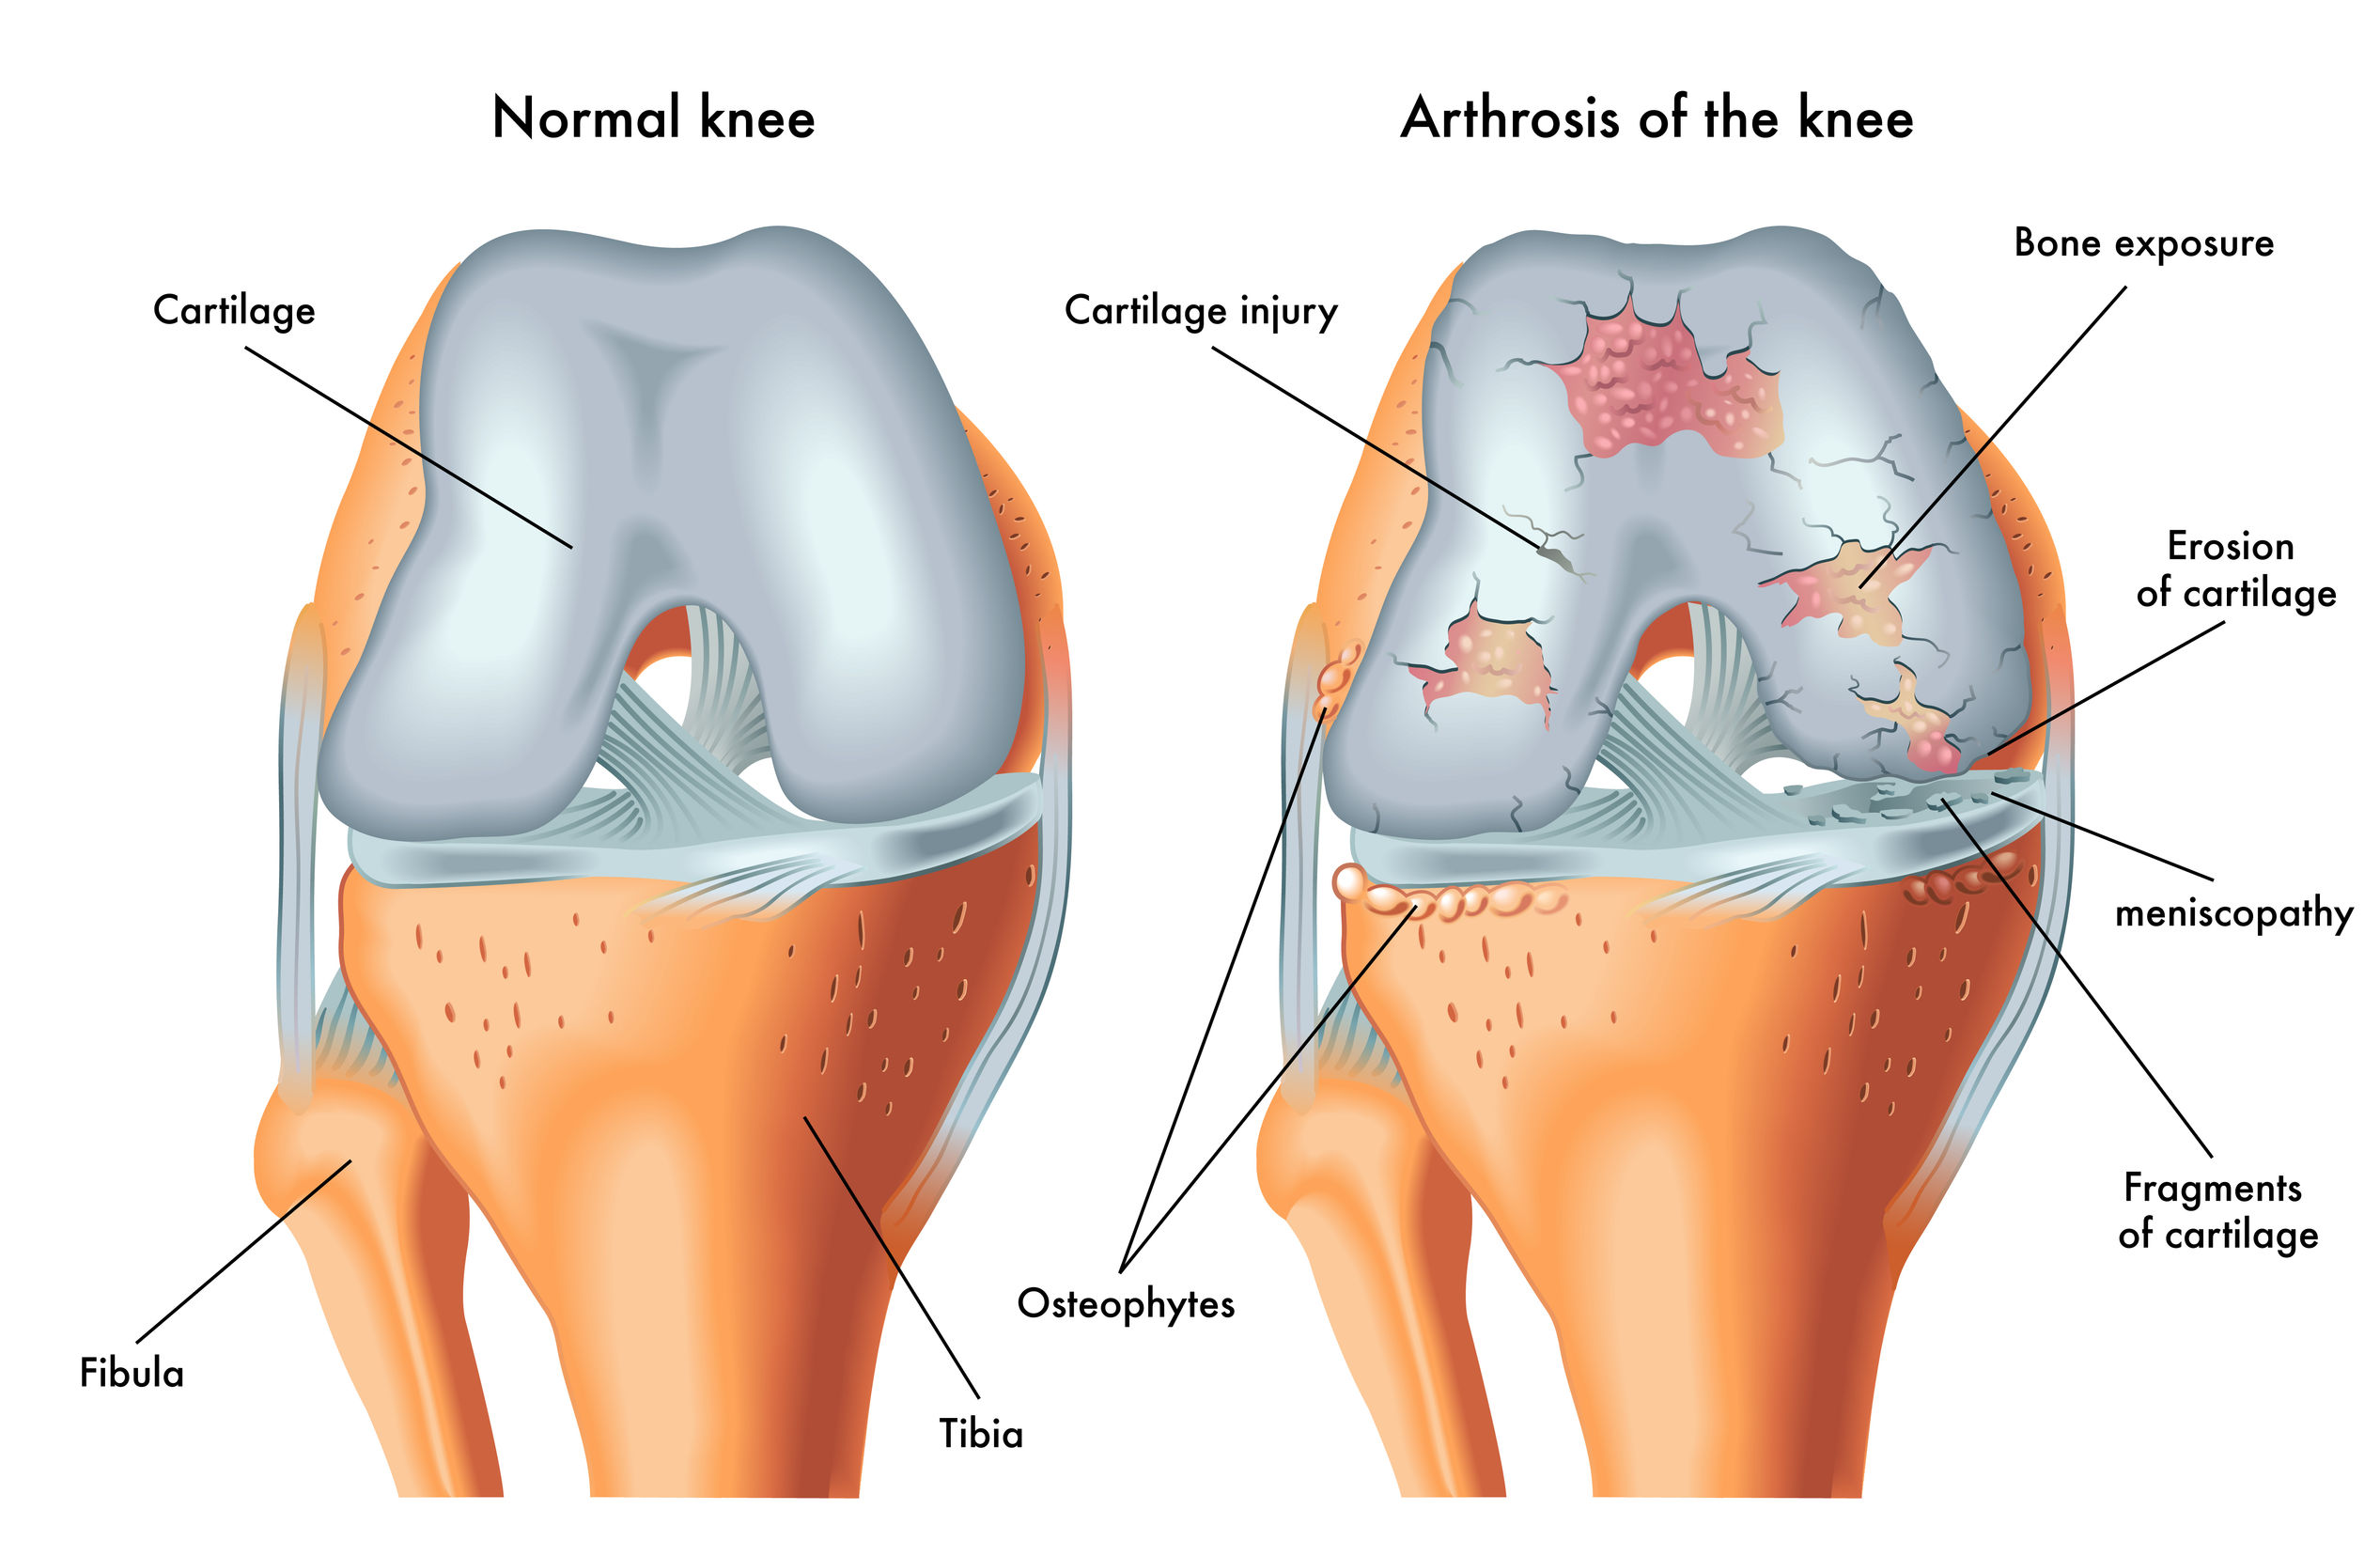 An anatomical diagram of a human knee joint